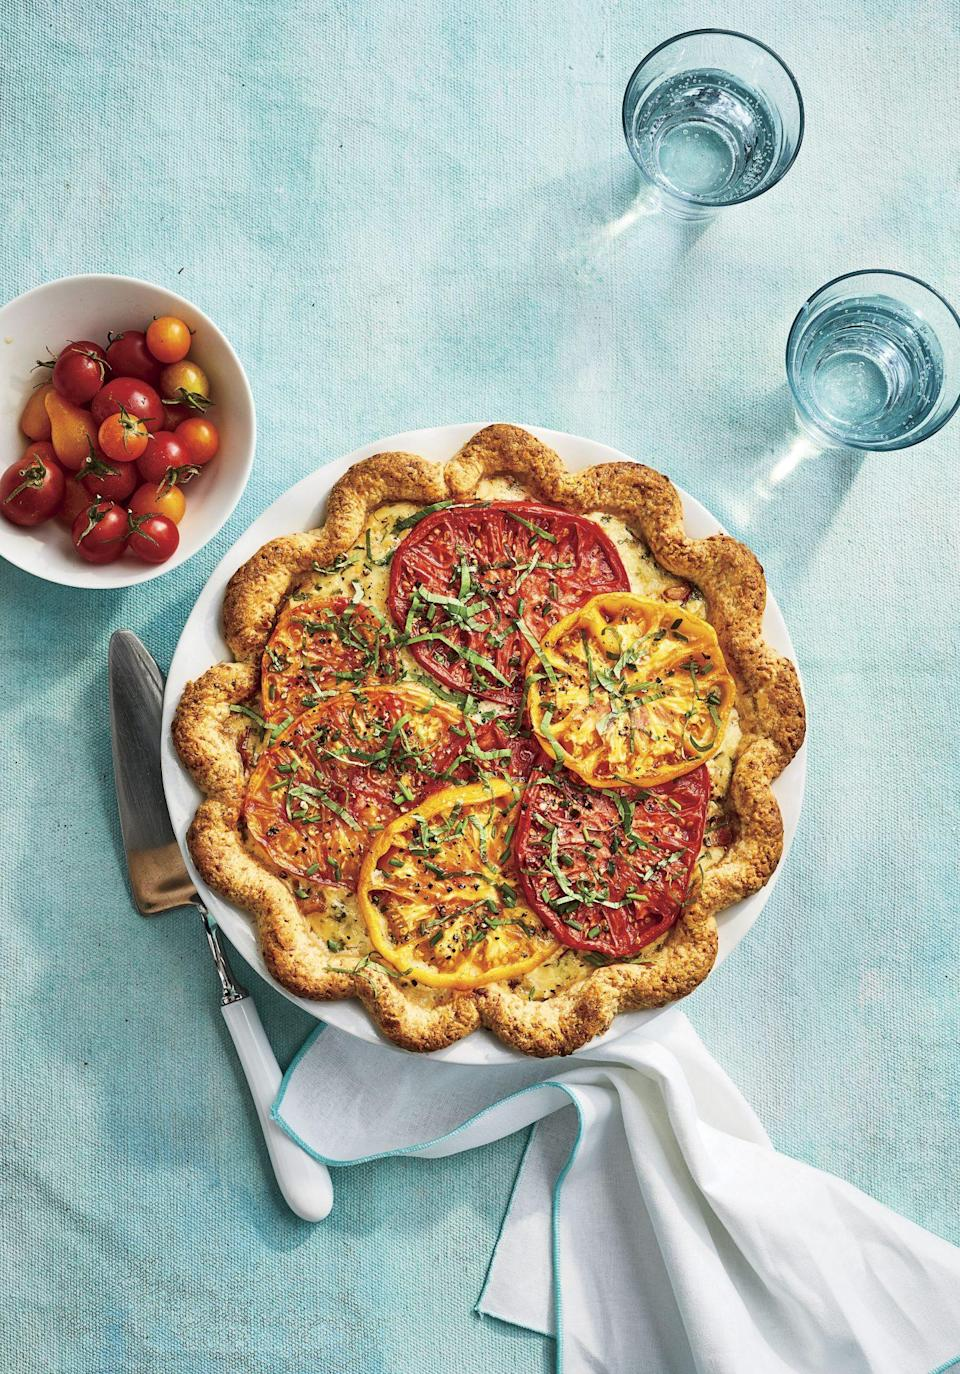 "<p><strong>Recipe: </strong><a href=""https://www.southernliving.com/recipes/heirloom-tomato-pie"" rel=""nofollow noopener"" target=""_blank"" data-ylk=""slk:Heirloom Tomato Pie"" class=""link rapid-noclick-resp""><strong>Heirloom Tomato Pie</strong></a></p> <p>If our readers aren't whipping up a BLT with their summer harvest of tomatoes, they're making tomato pie. This totally-from-scratch recipe starts with a parmesan-buttermilk crust and ends with a sprinkle of fresh herbs from the garden. Readers found ways to adapt the recipe with store-bought crusts and whatever cheese they had on hand.</p>"